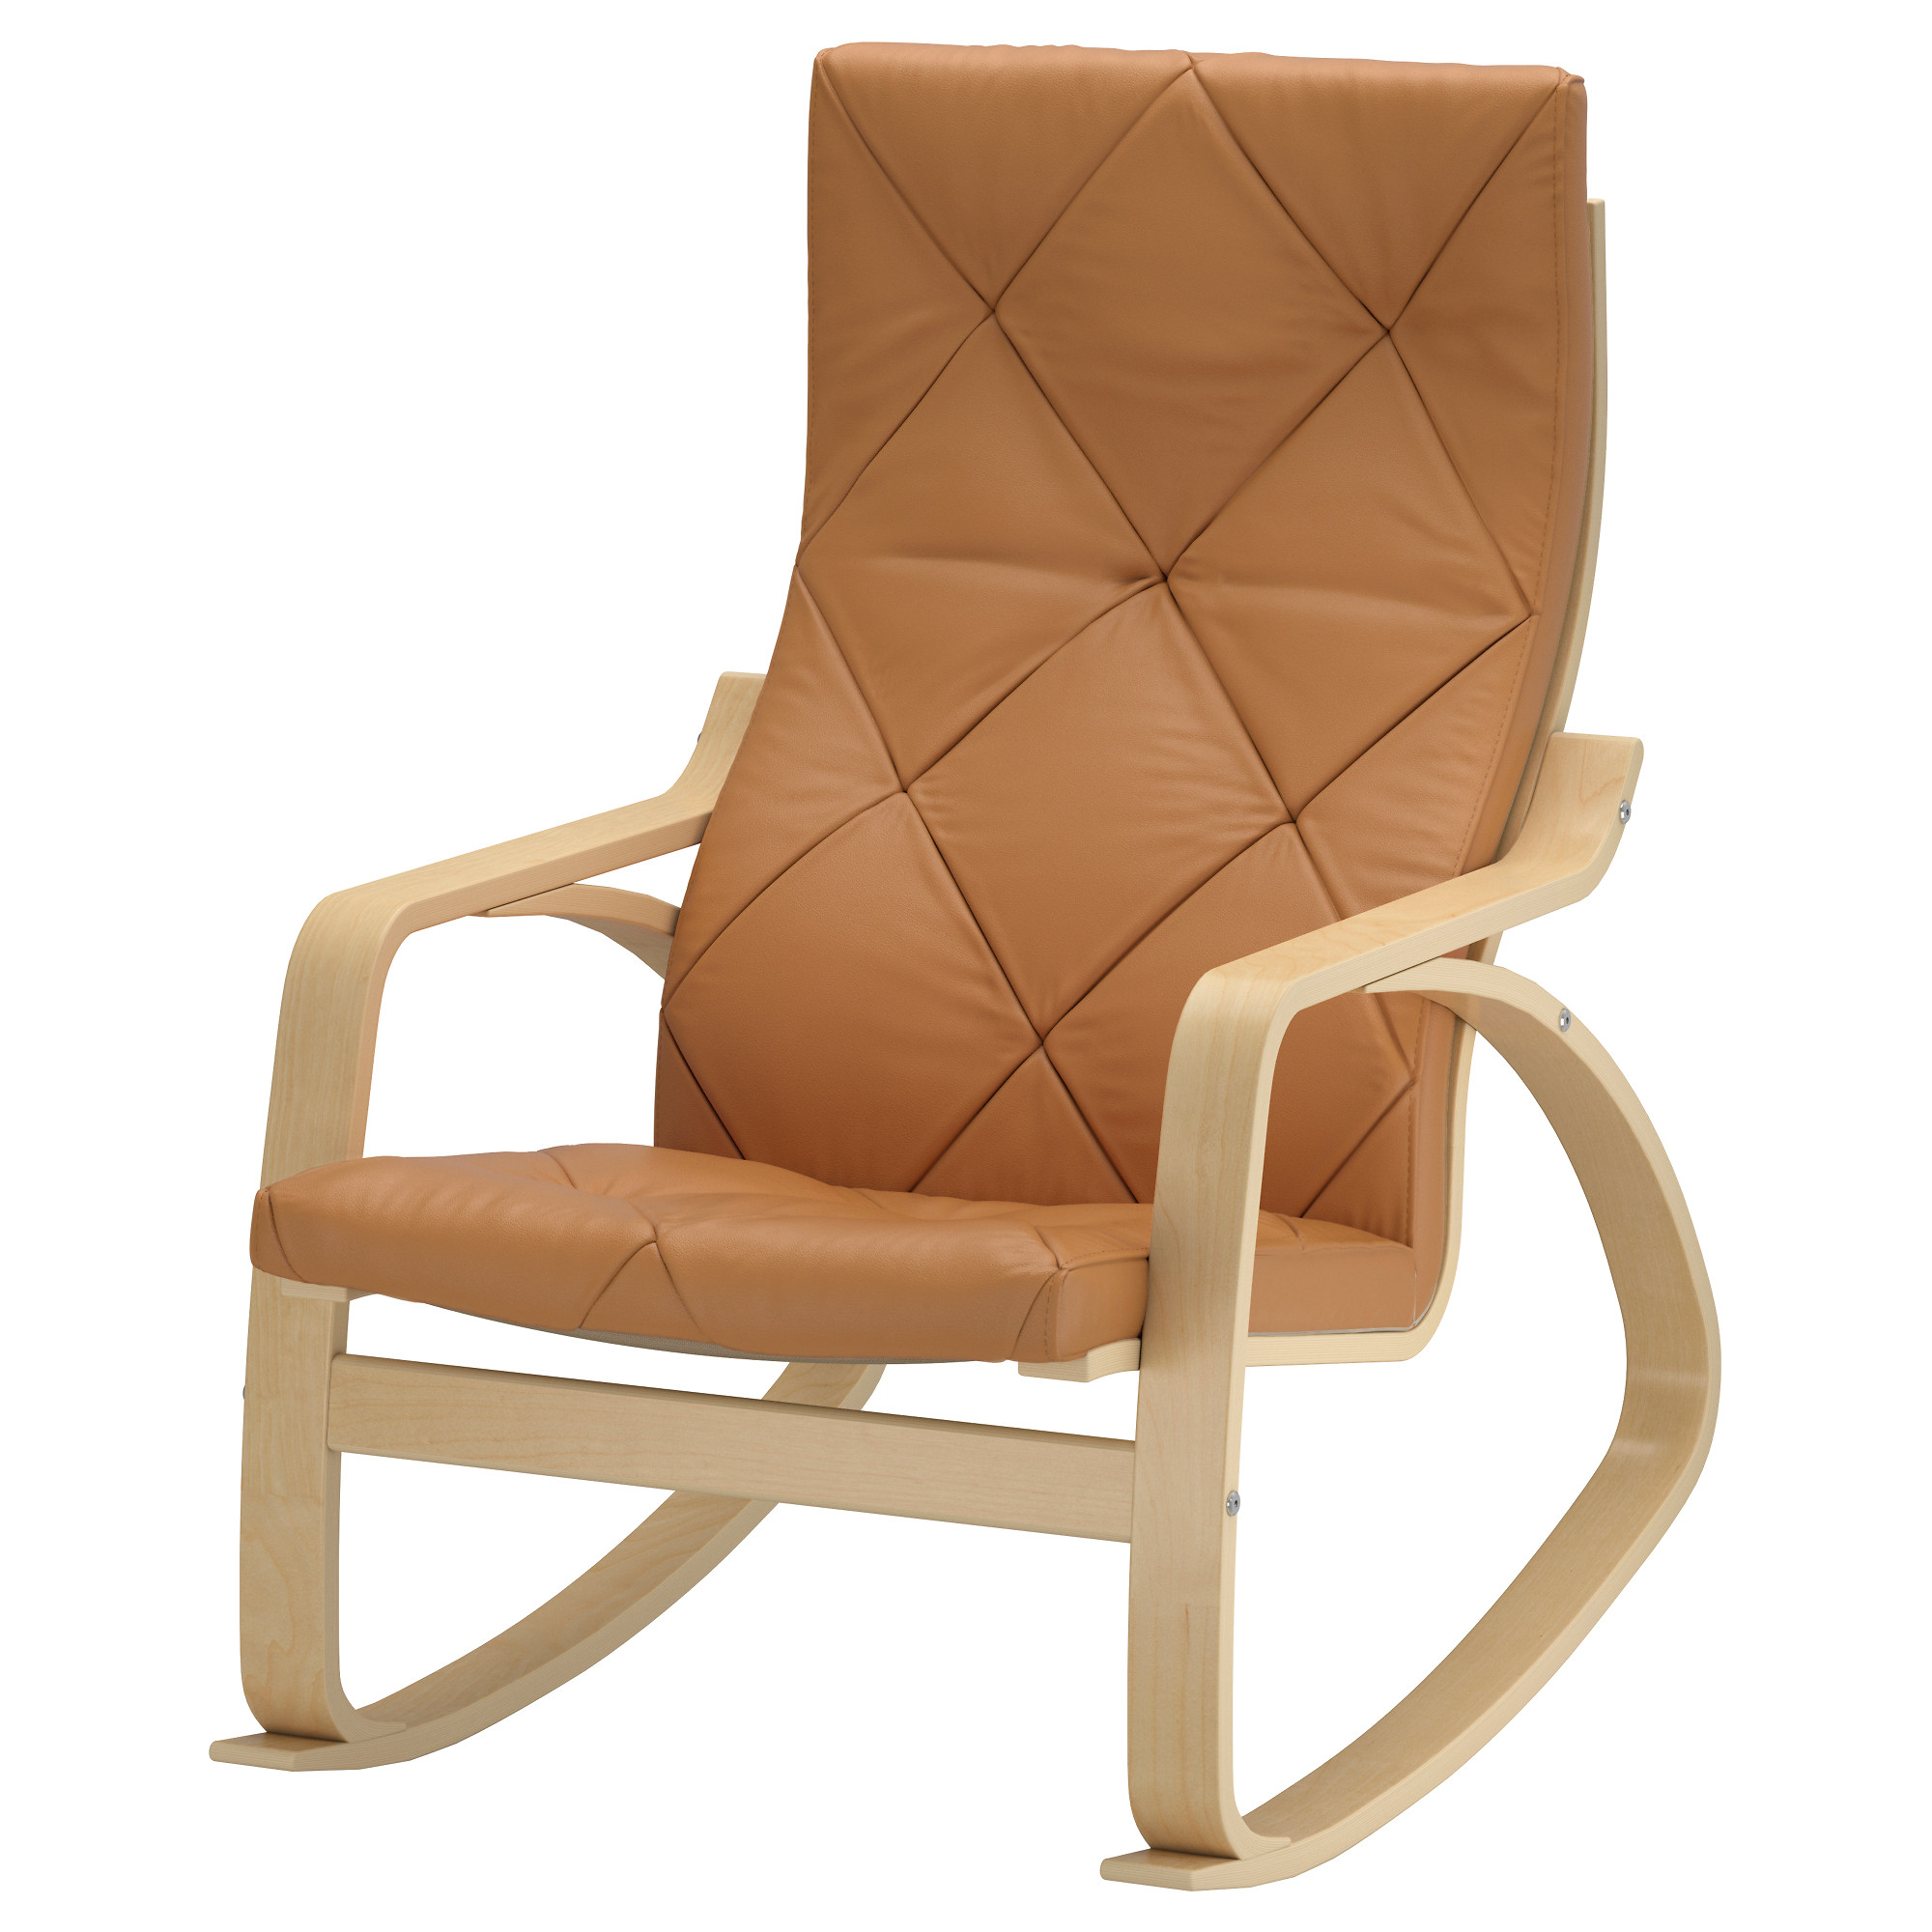 Ikea lillberg rocking chair - Ikea Lillberg Rocking Chair 3